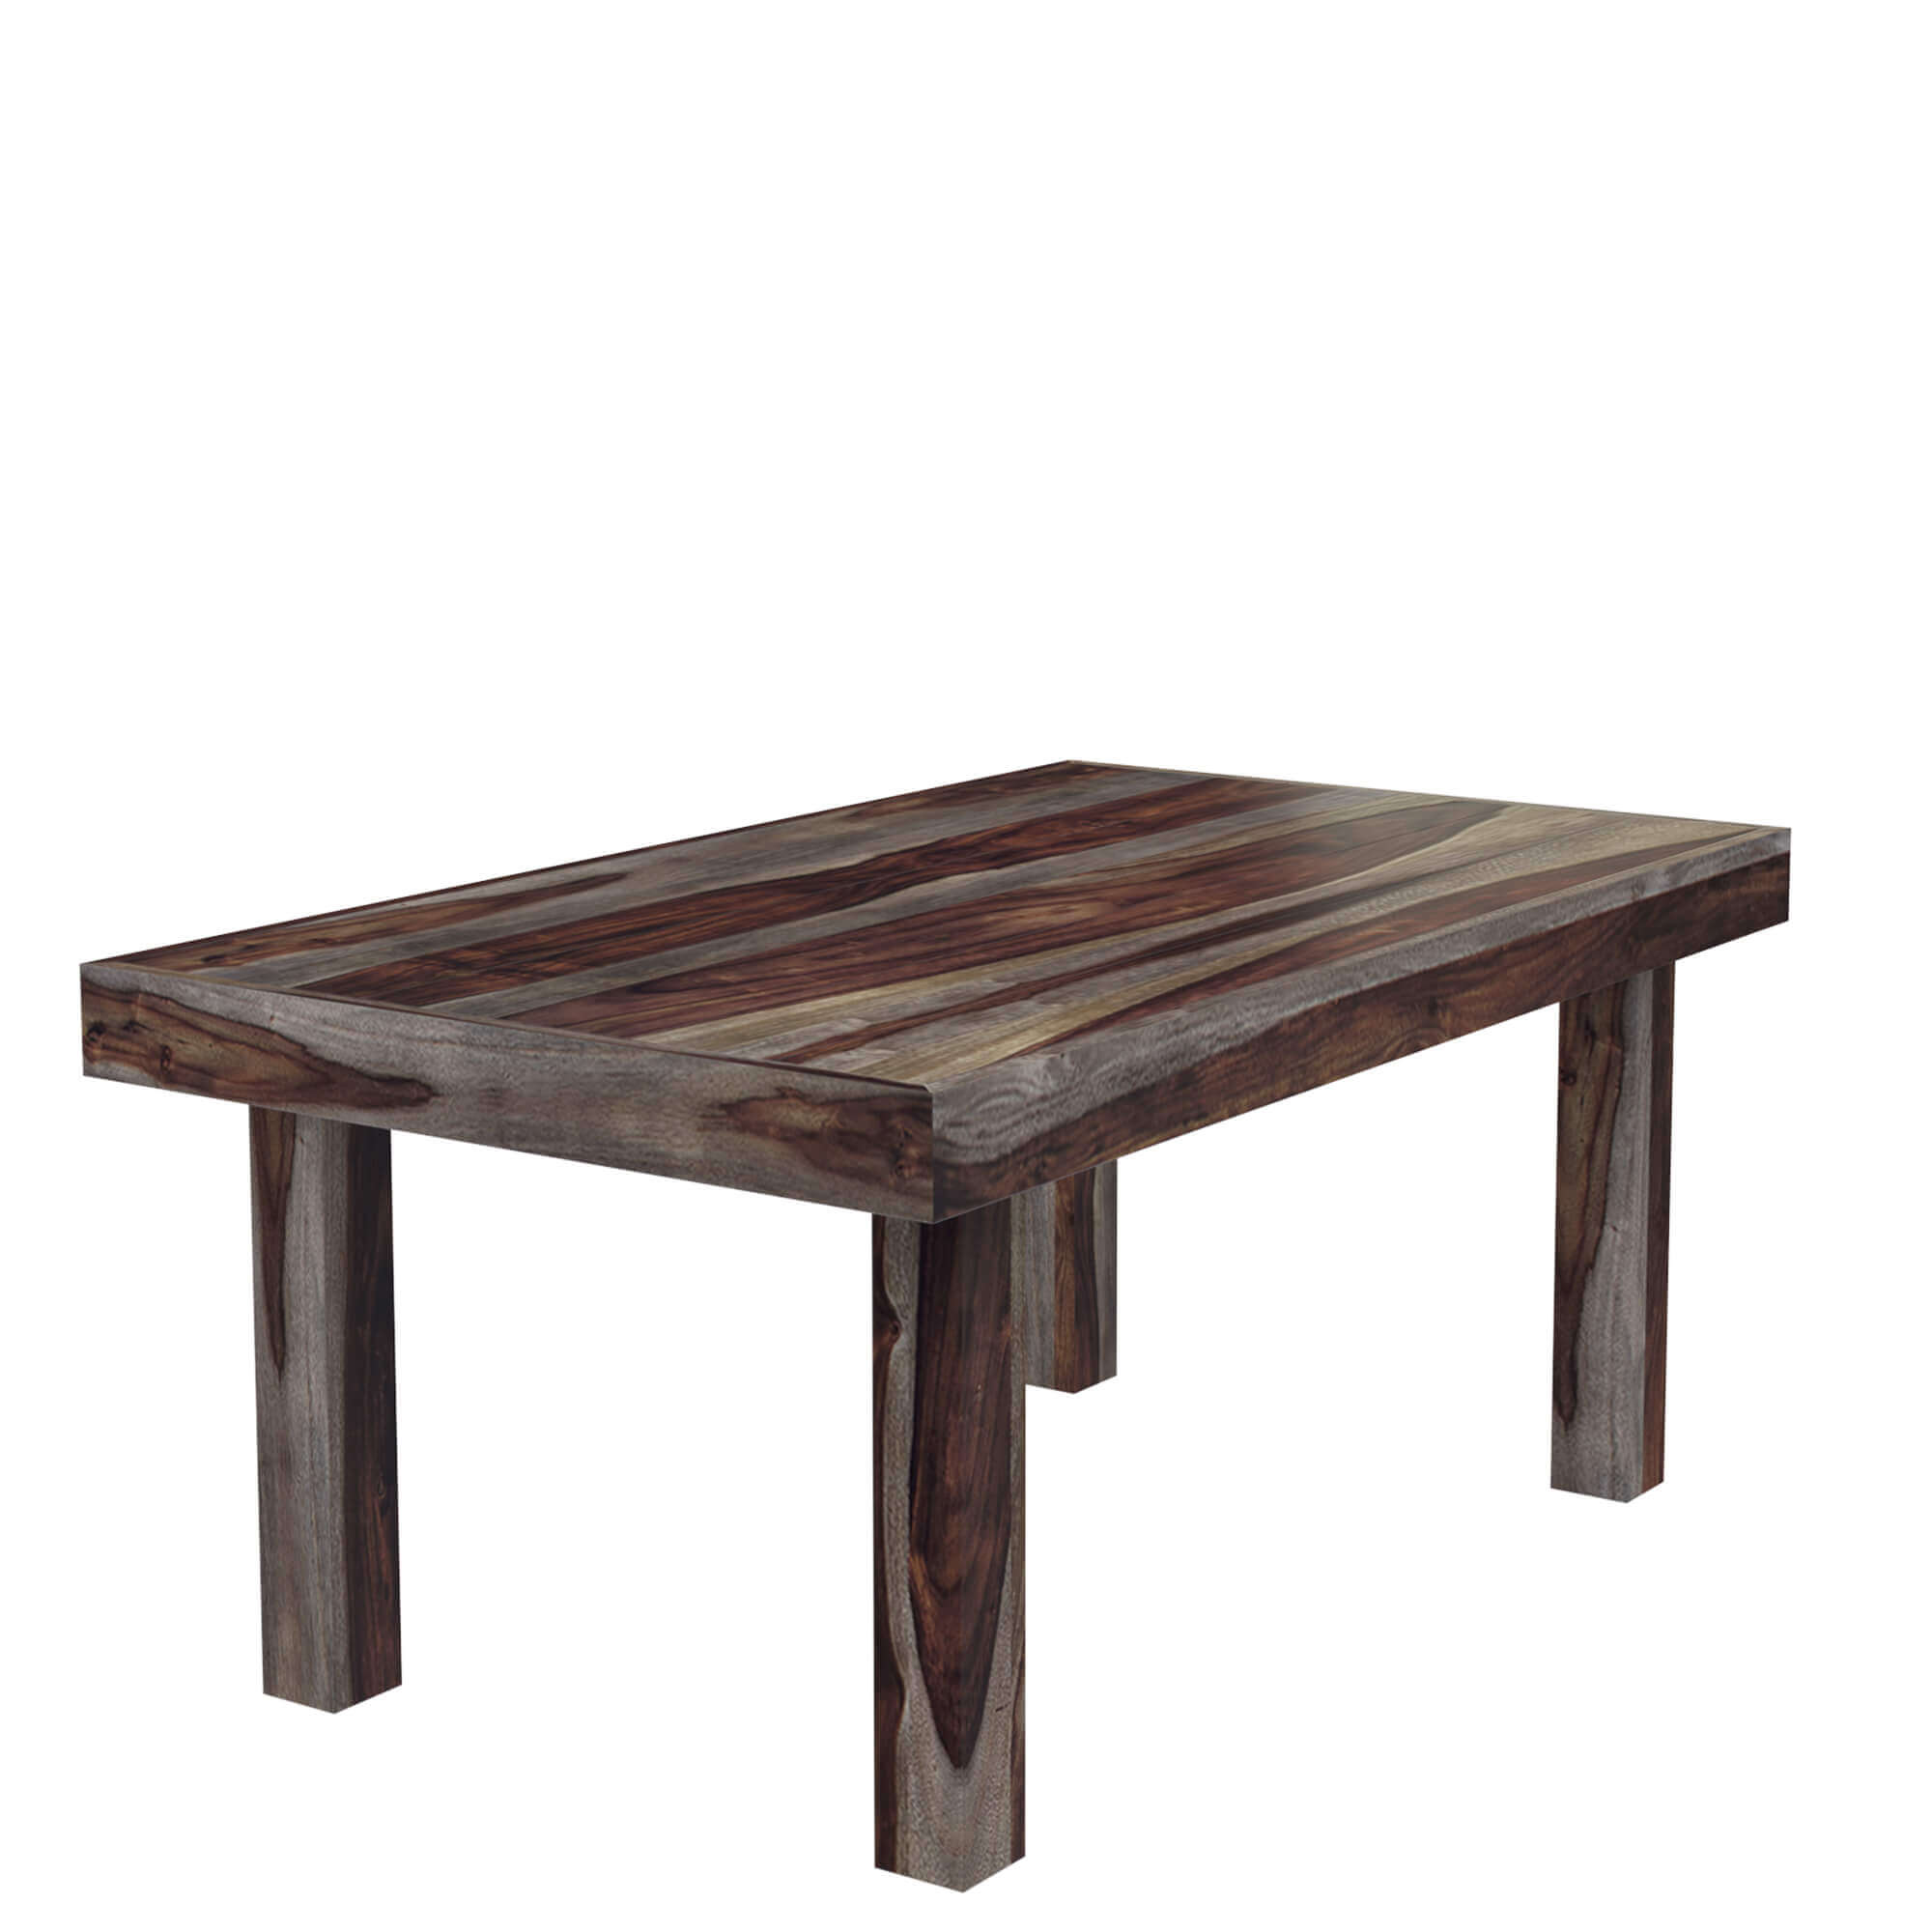 Frisco modern solid wood rectangular rustic dining room table for Modern dinning room table